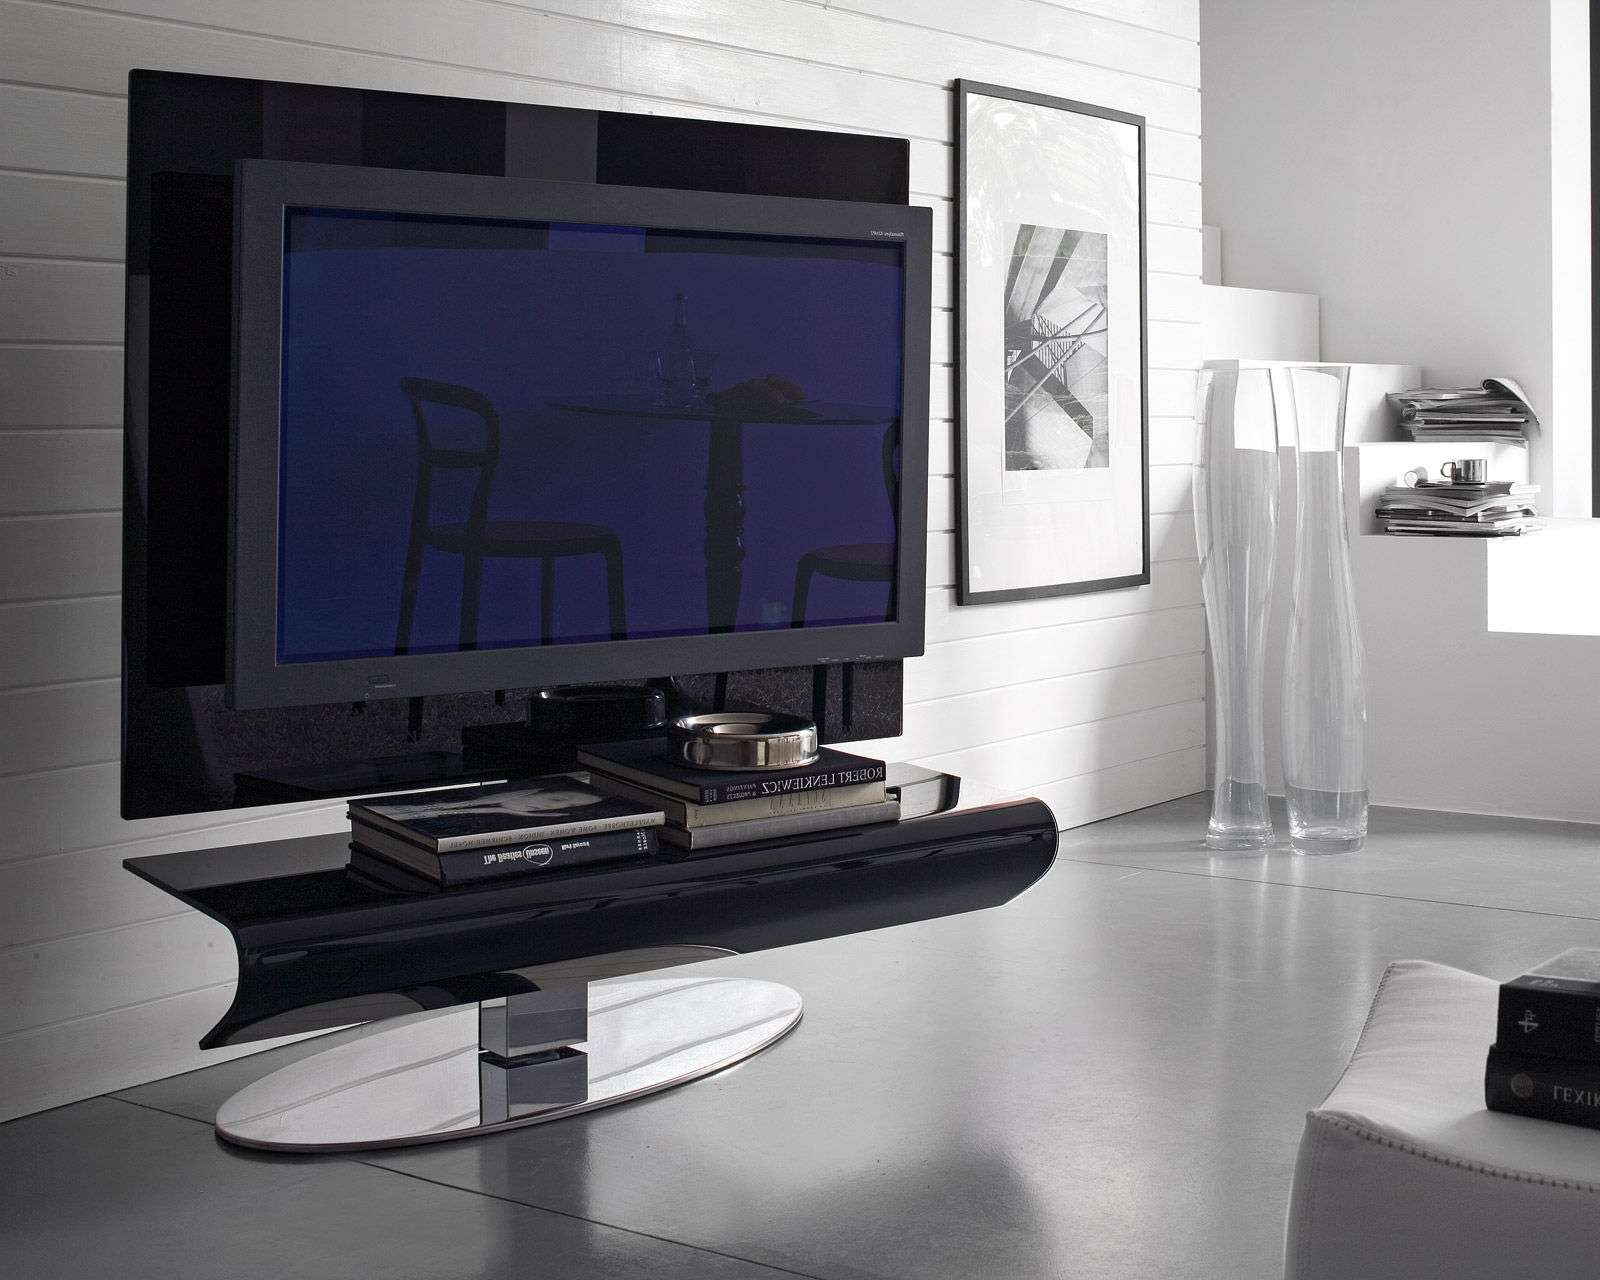 Modern Minimalist Flat Screen Tv Stand With Mount And Mirrored Pertaining To Modern Tv Stands With Mount (View 9 of 15)